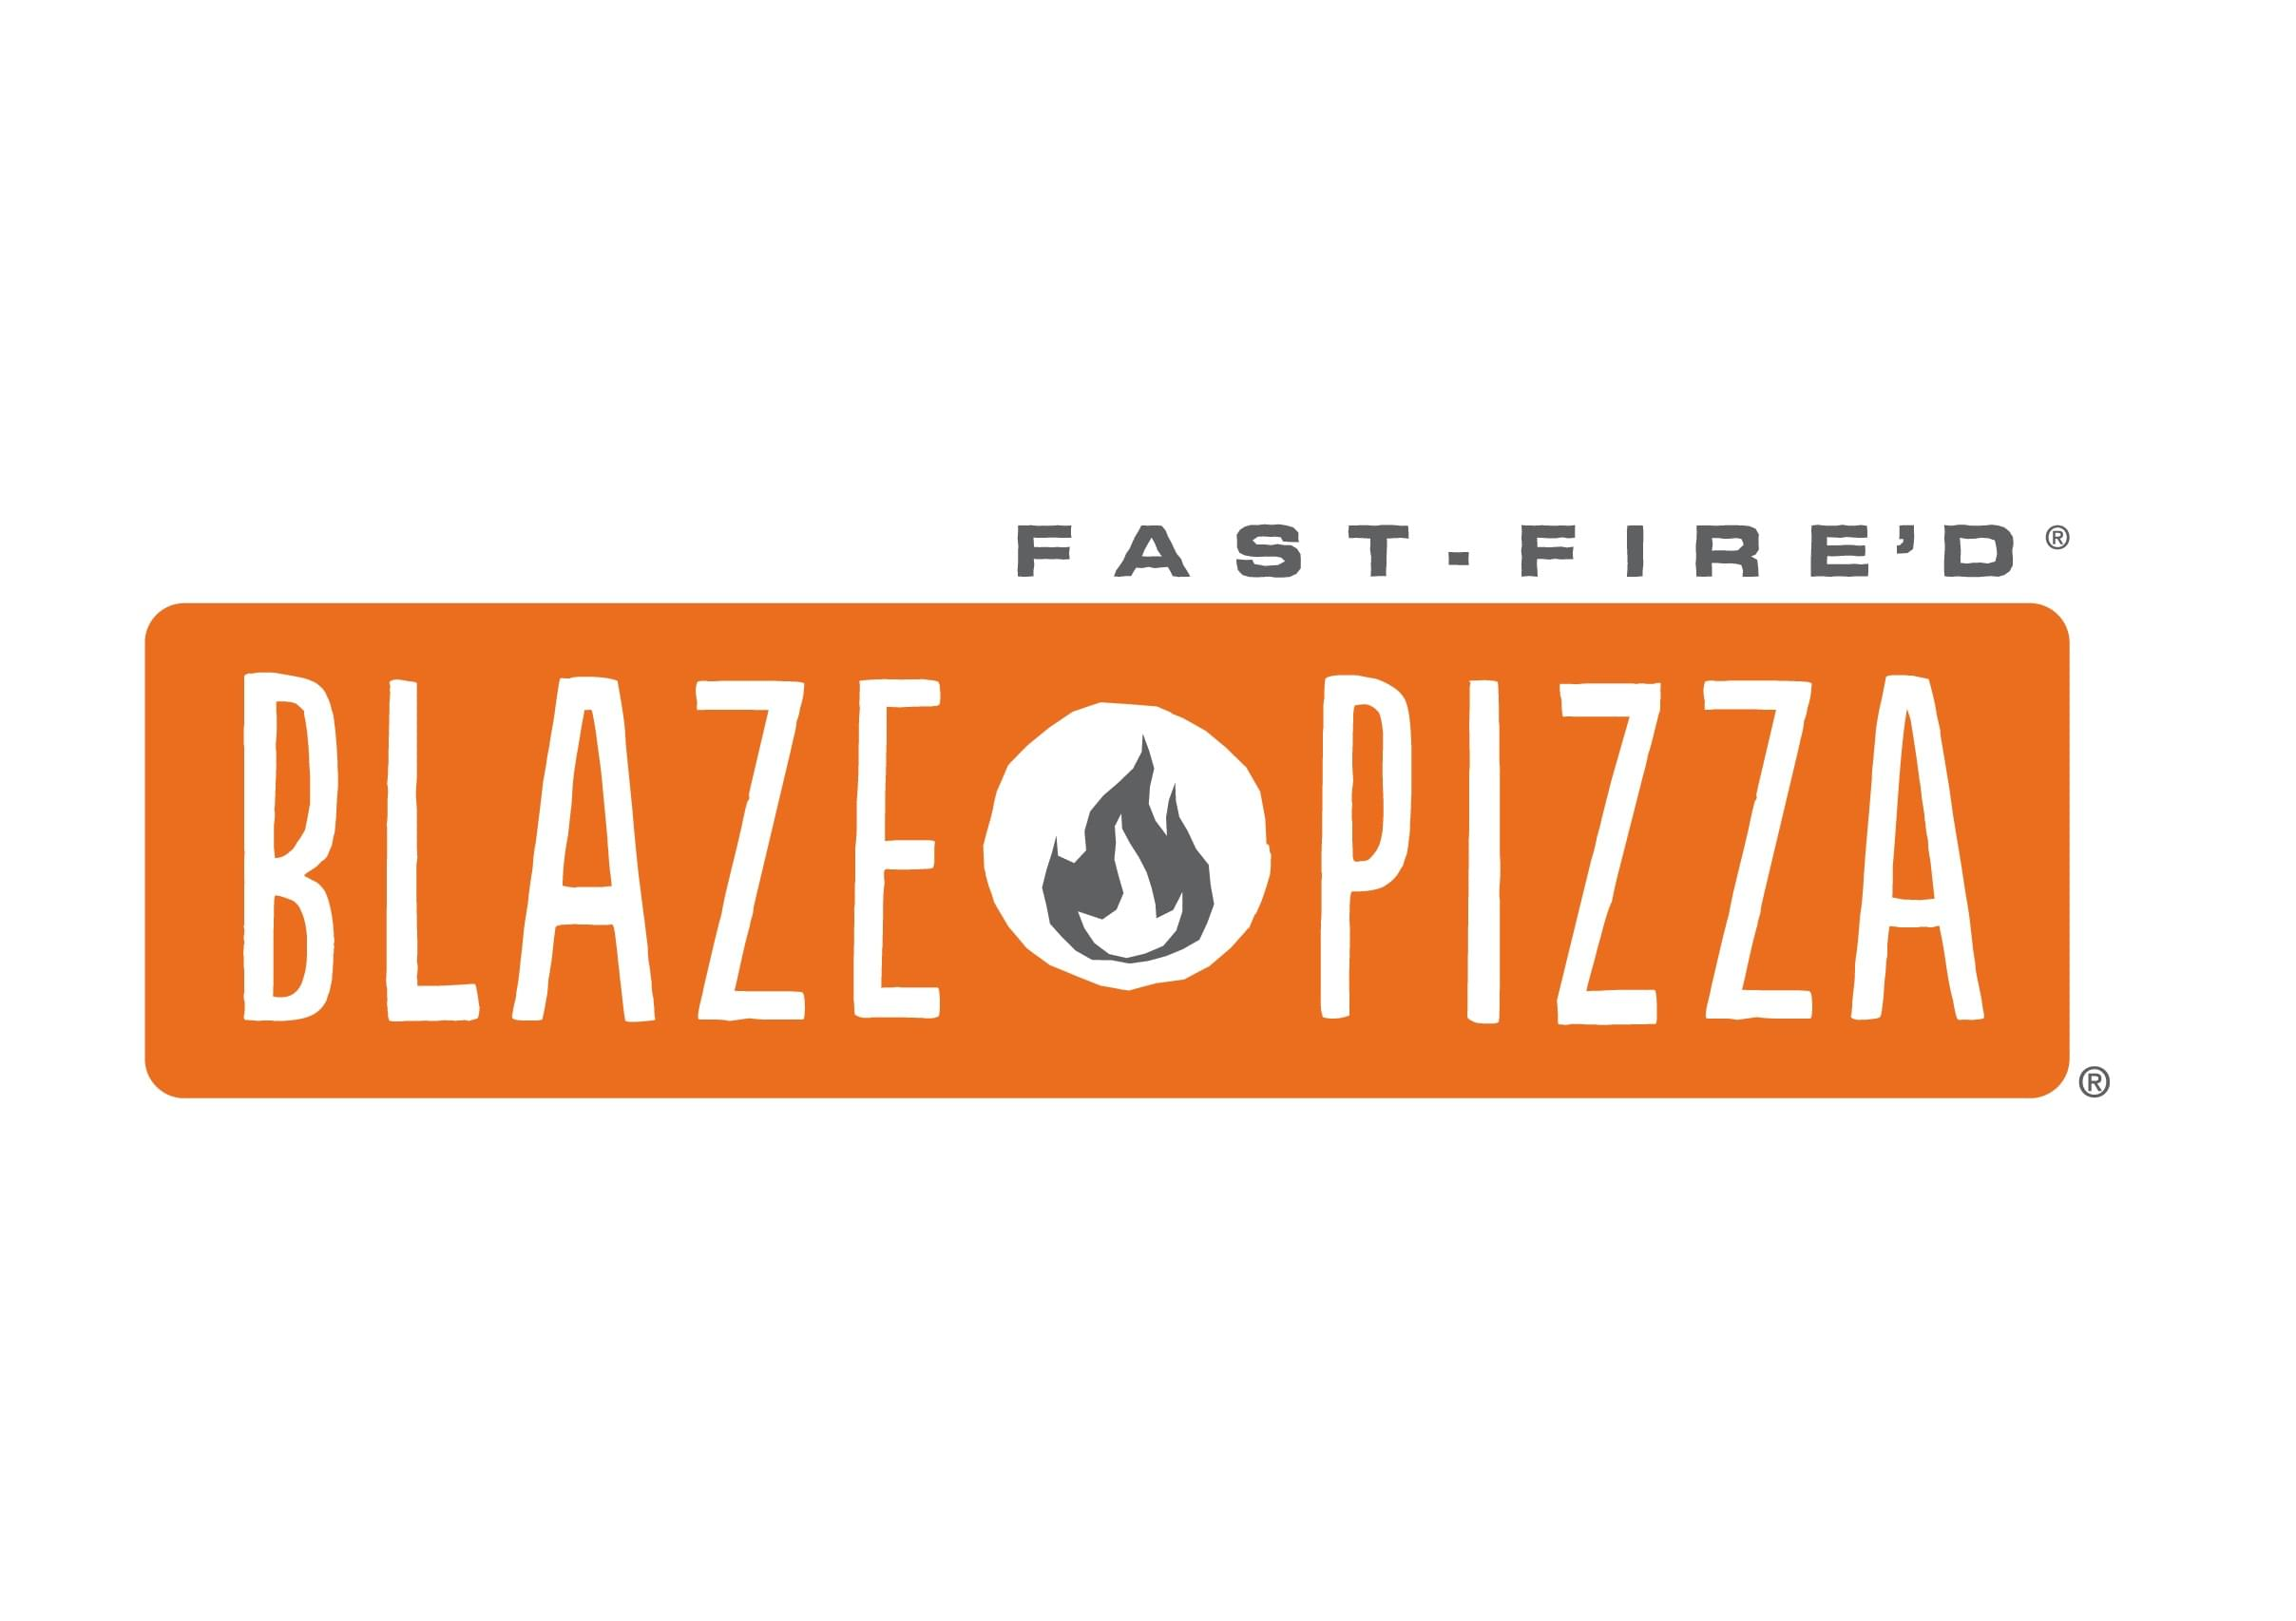 Sweet Deal – Blaze Pizza